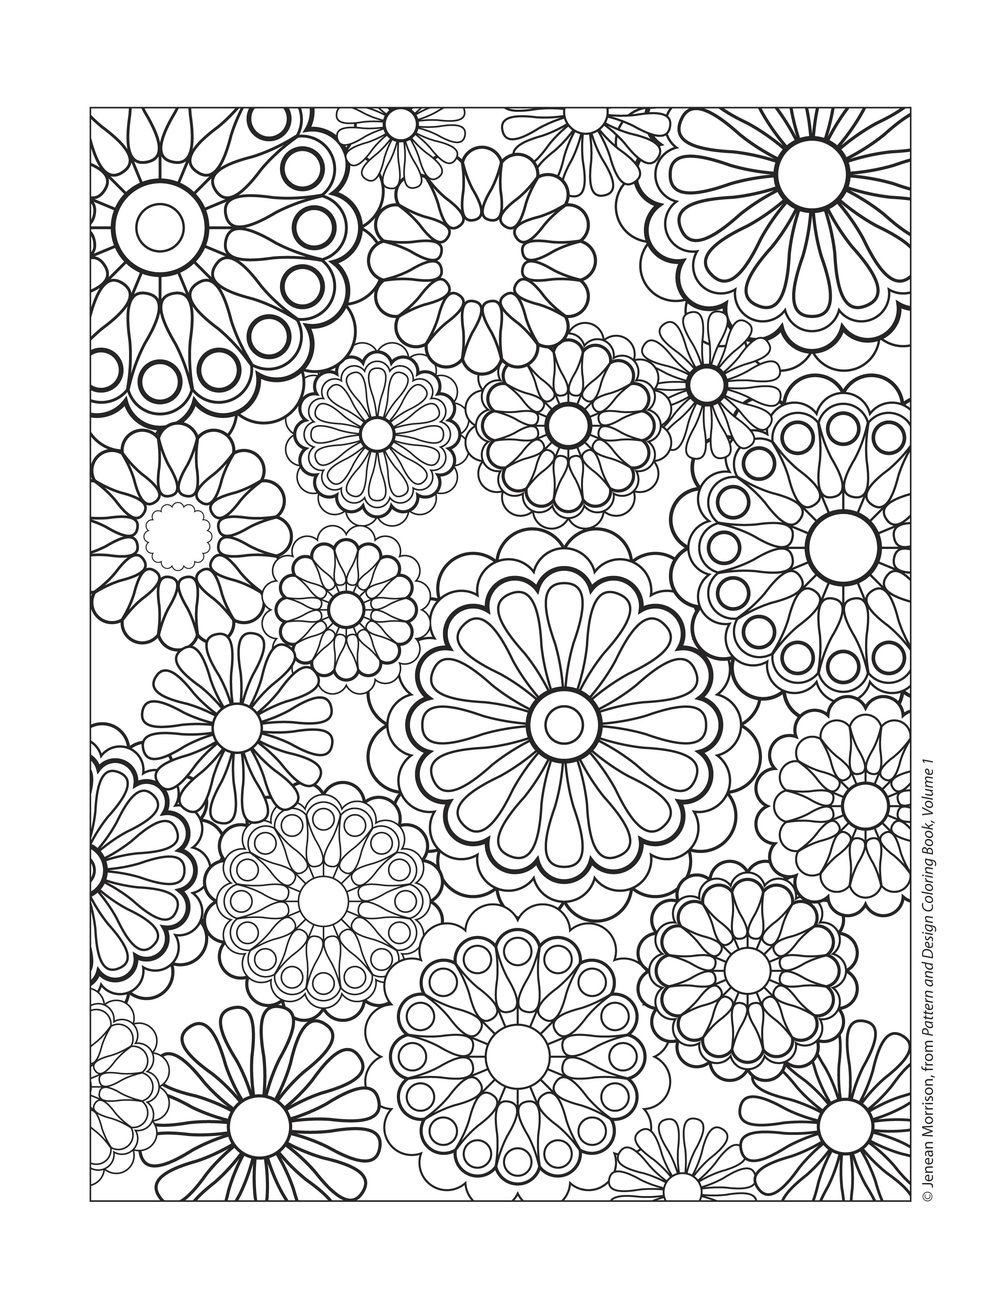 cool design coloring pages to print Download-Design Patterns Coloring Pages Free coloring pages 14-d